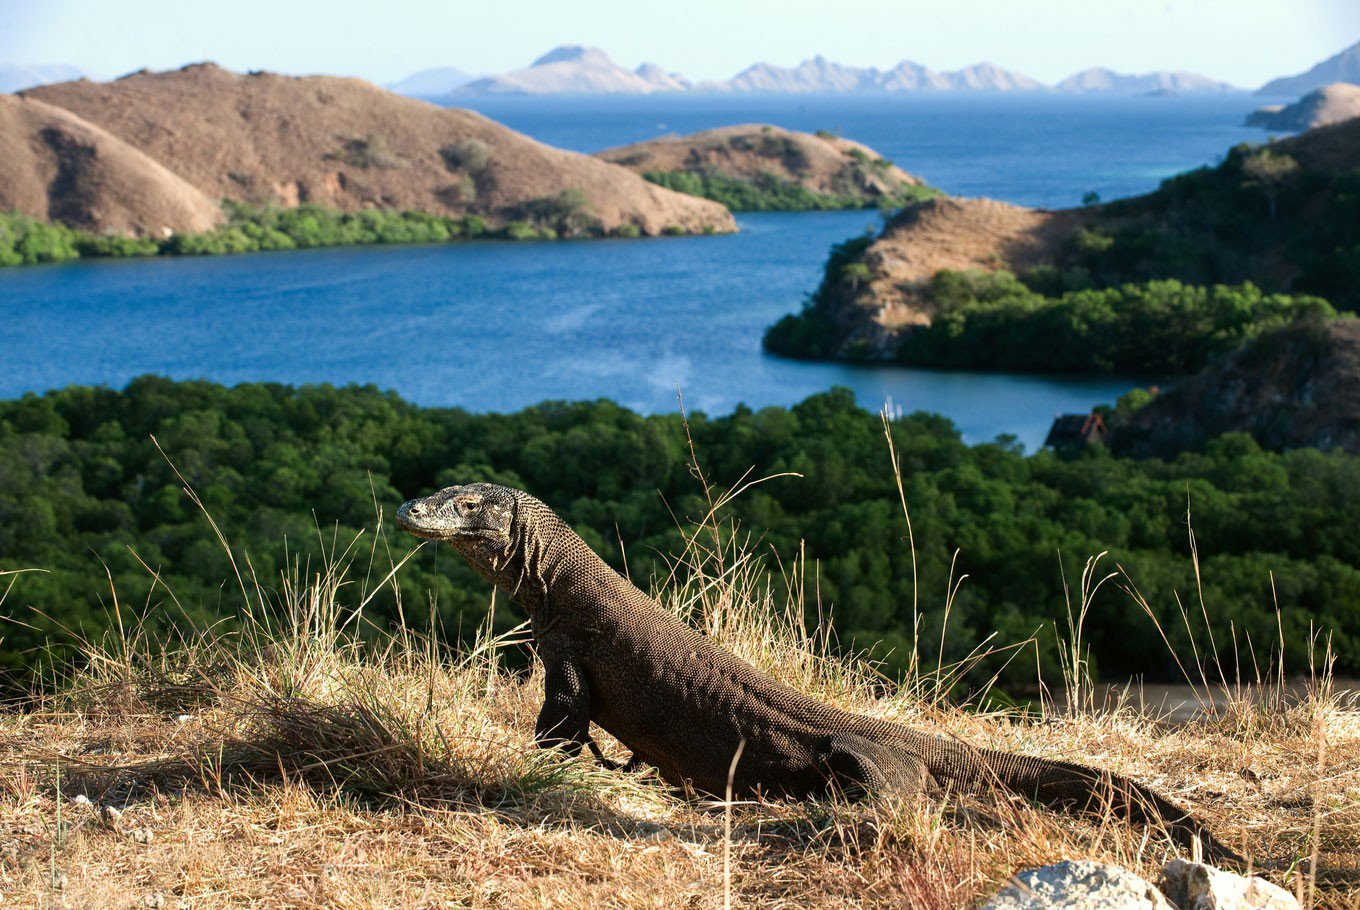 Komodo Island, welcome to Jurassic Park - From 30 minutes to 3 hours, Komodo Island has 3 different main treks, accessible to everyone. You will see Dragons after about 10 minutes walking, no needs to go deeper into the jungle! But if you are a well-prepared trekker, there are longer treks which may take 8 hours and lead to breathtaking views over the bay and the rest of the National Park. A local ranger will guide you over the island.